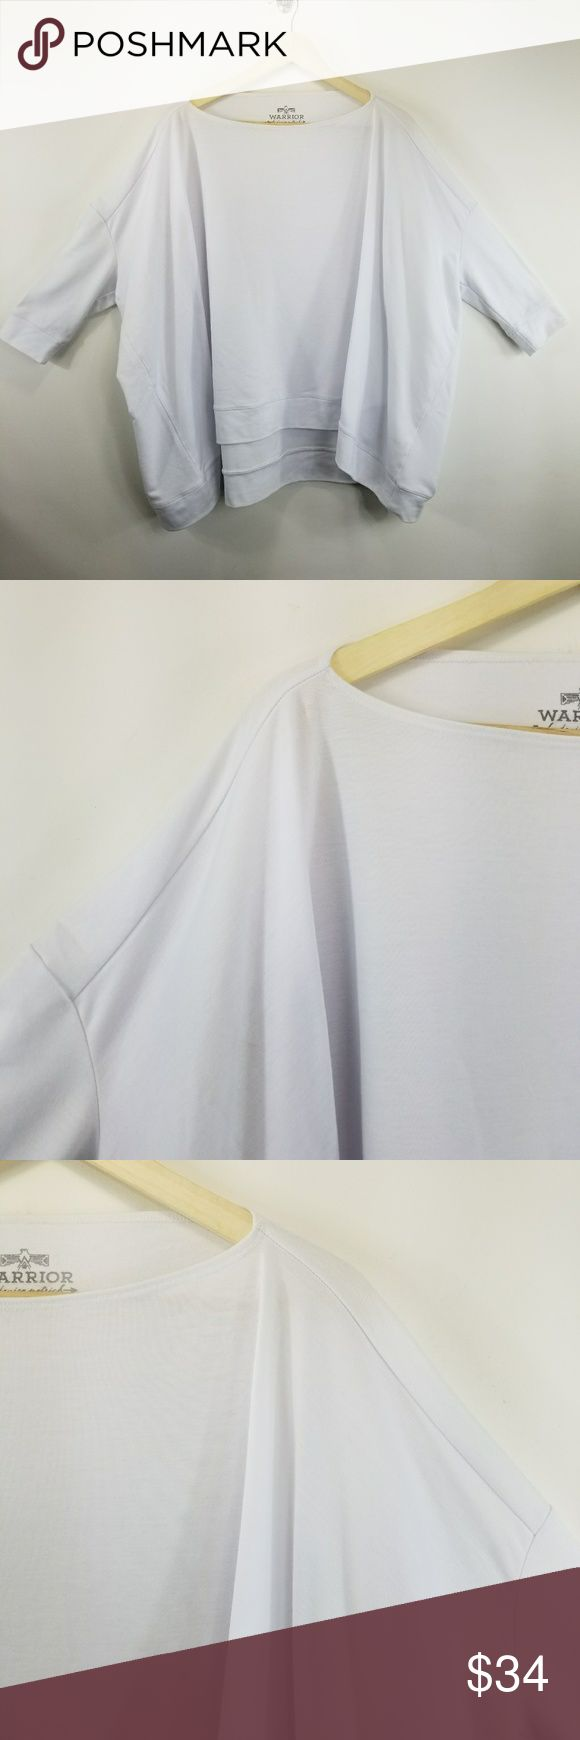 Warrior by Danica Patrick Terry Batwing Tunic Top Warrior by Danica Patric Batwing Terry Tunic Top Blouse TRW True White PO# 33JCF7014 337TF150 86% Polyester 7% Spandex 7% Rayon Warrior by Danica Patrick Tops Tunics